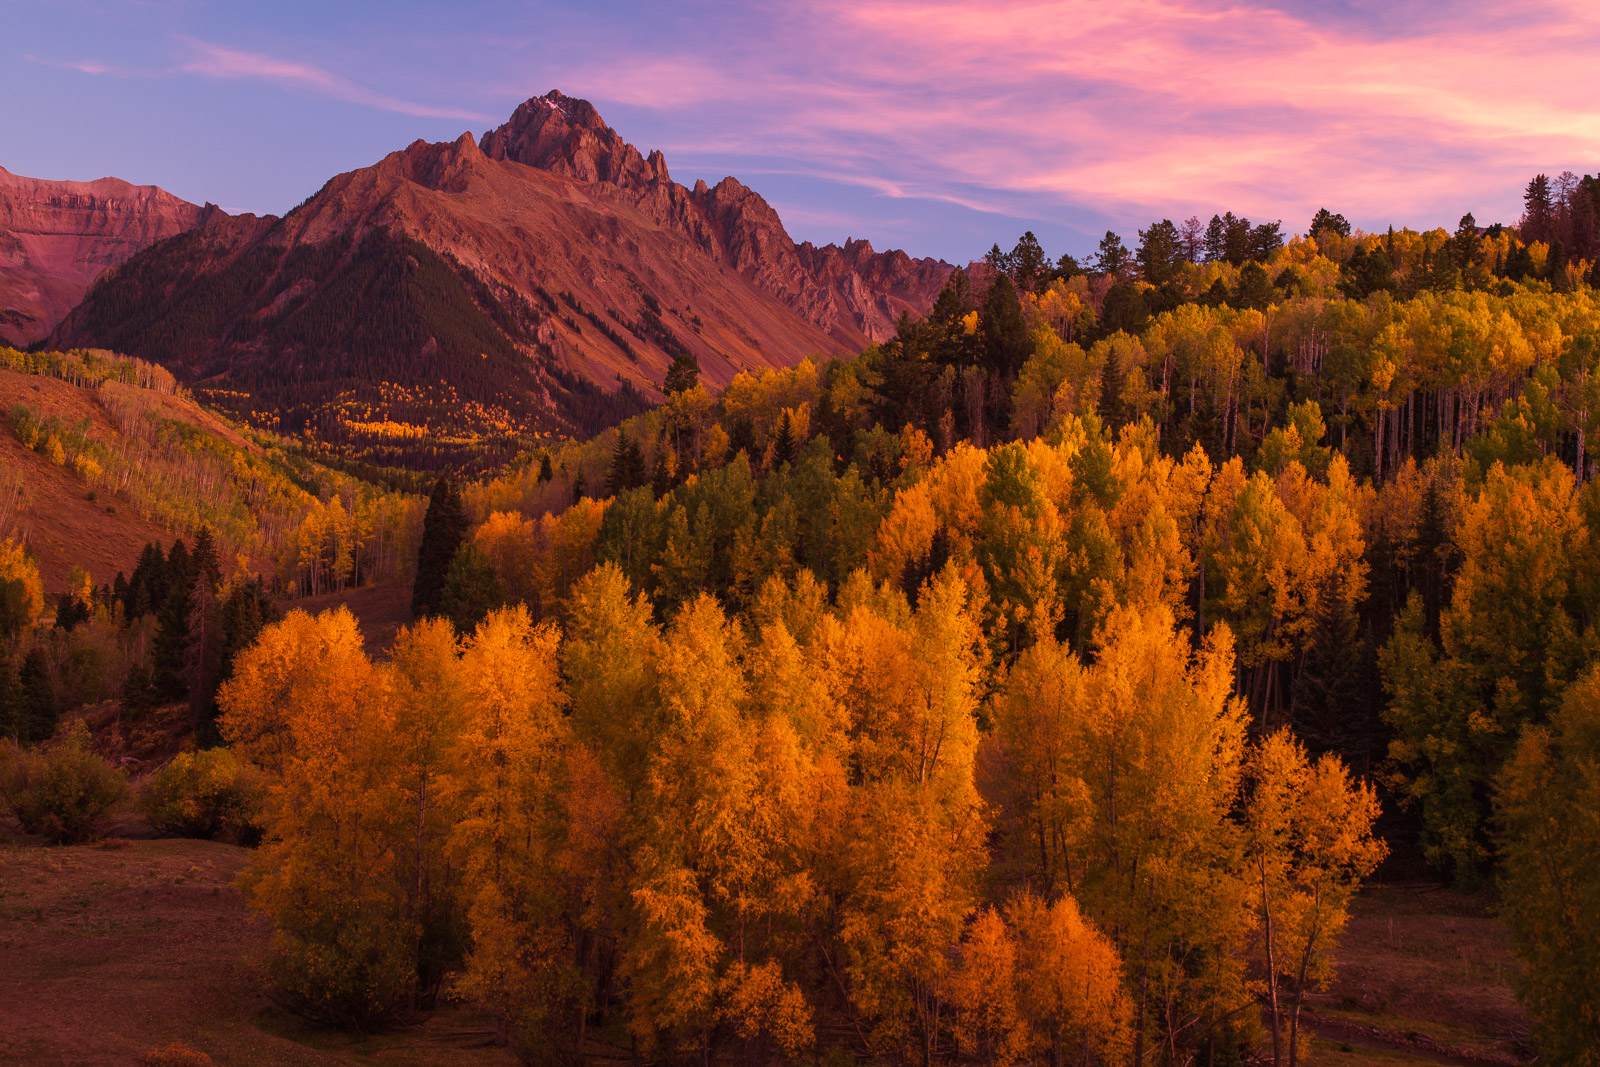 Mount Sneffels at sunset, San Juan Mountains, Colorado.